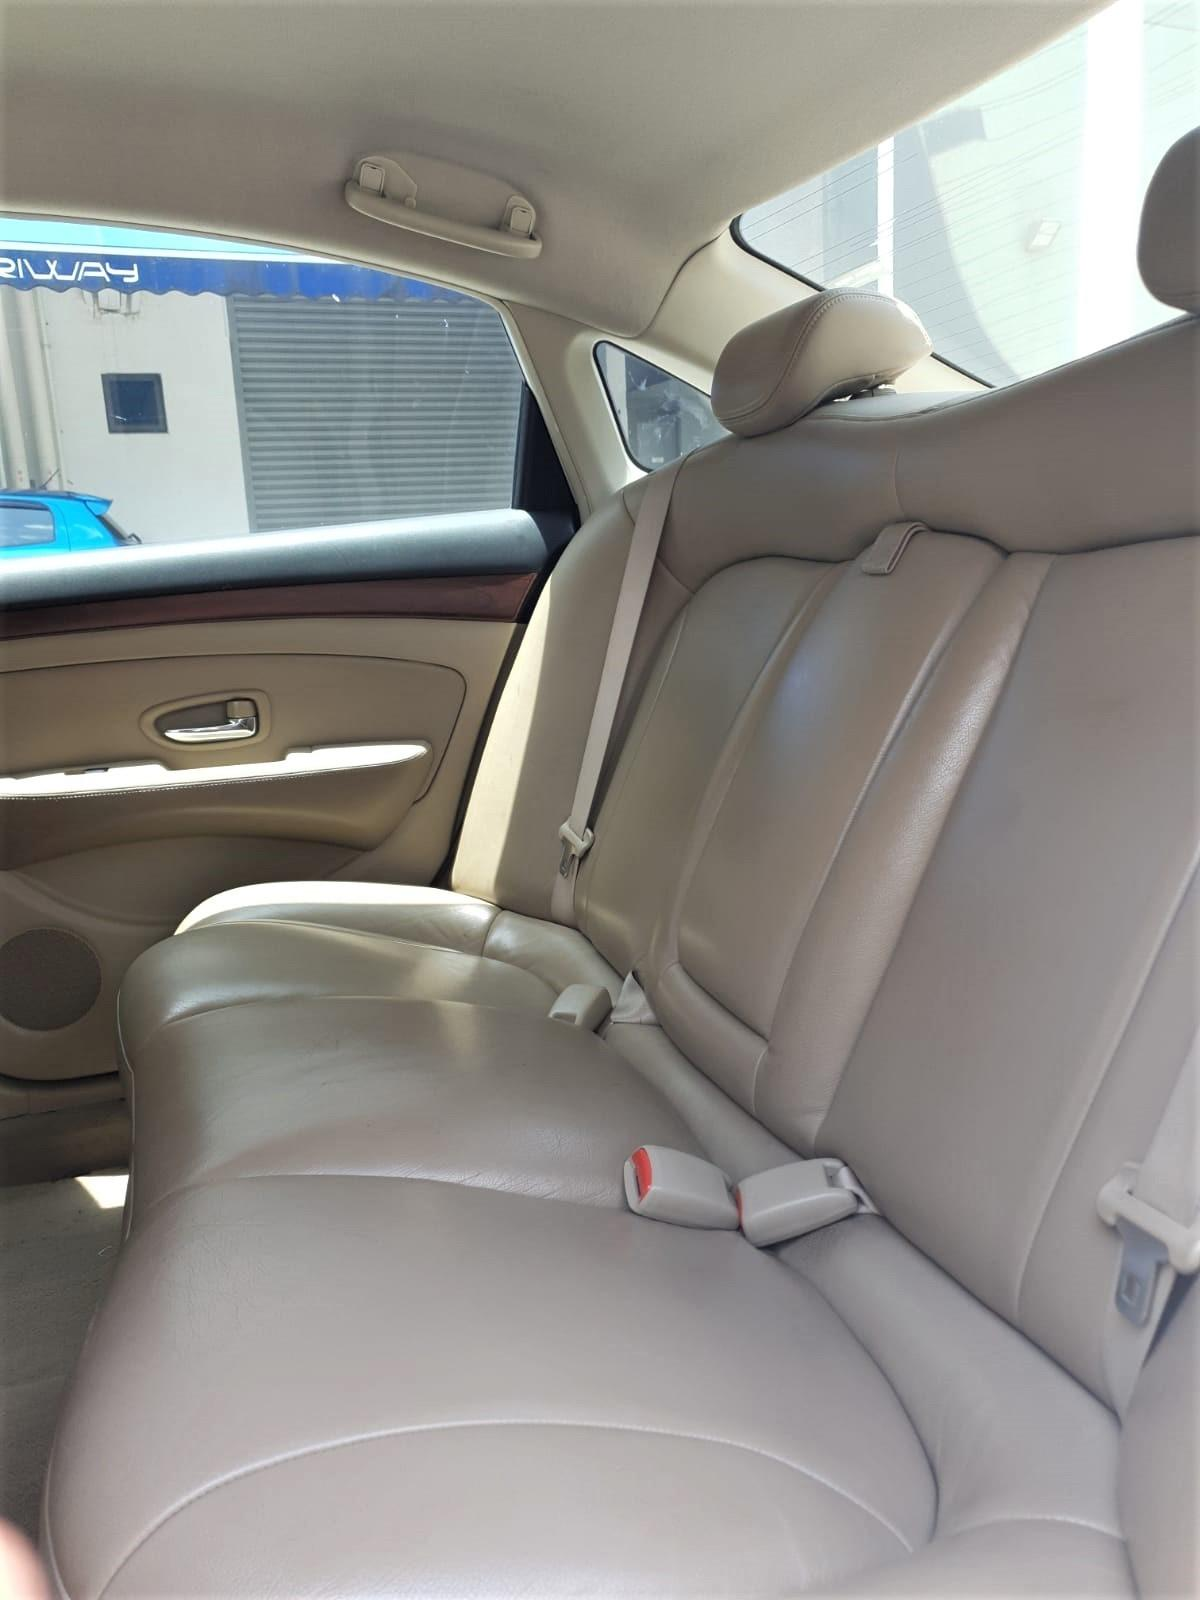 Nissan Sylphy 1.5A - Cheapest rental in city, quickest assistance!